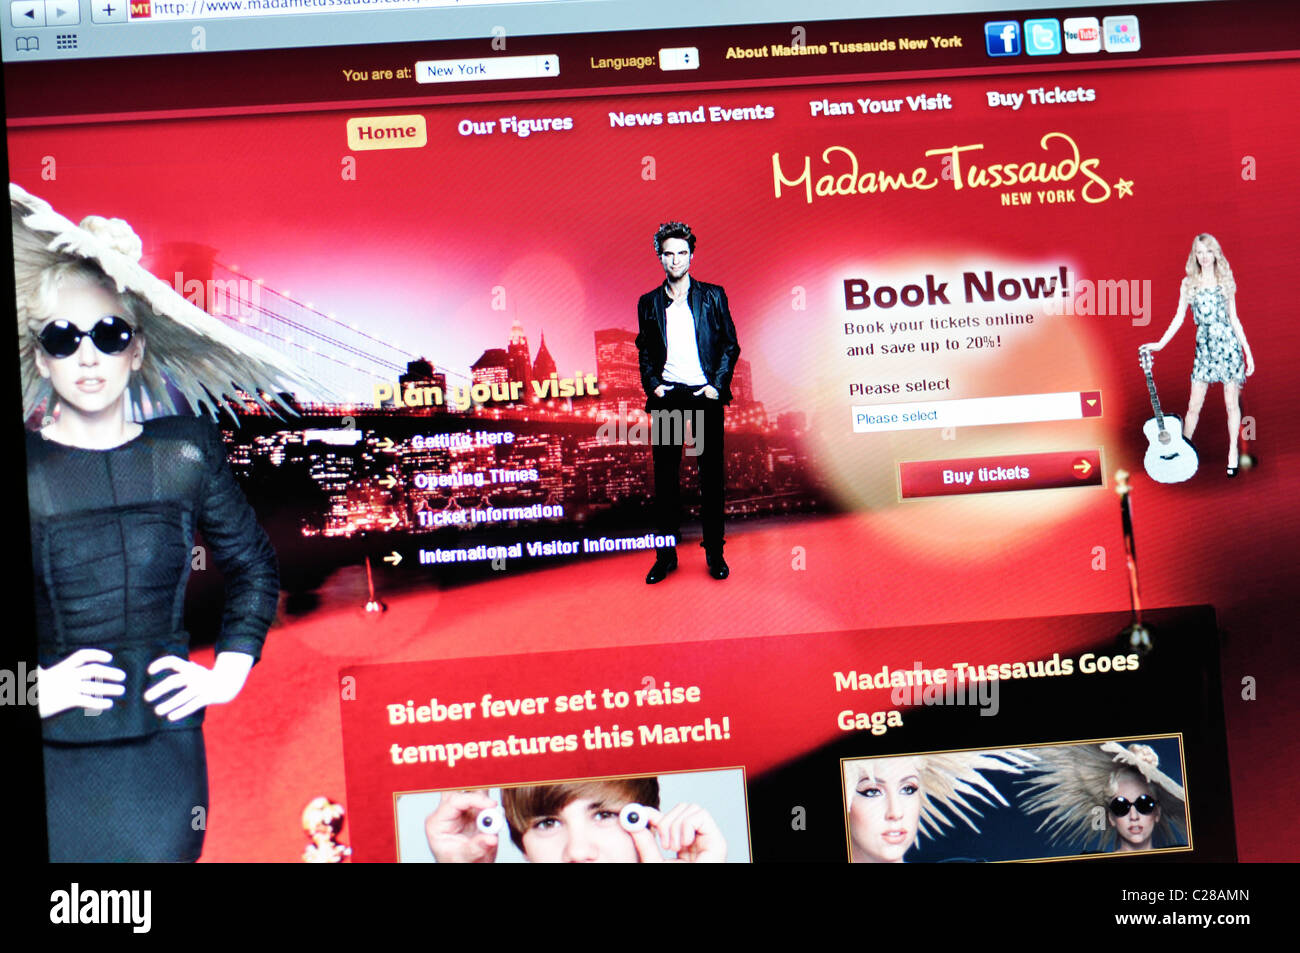 Madame Tussaud's wax museum  website - New York - Stock Image